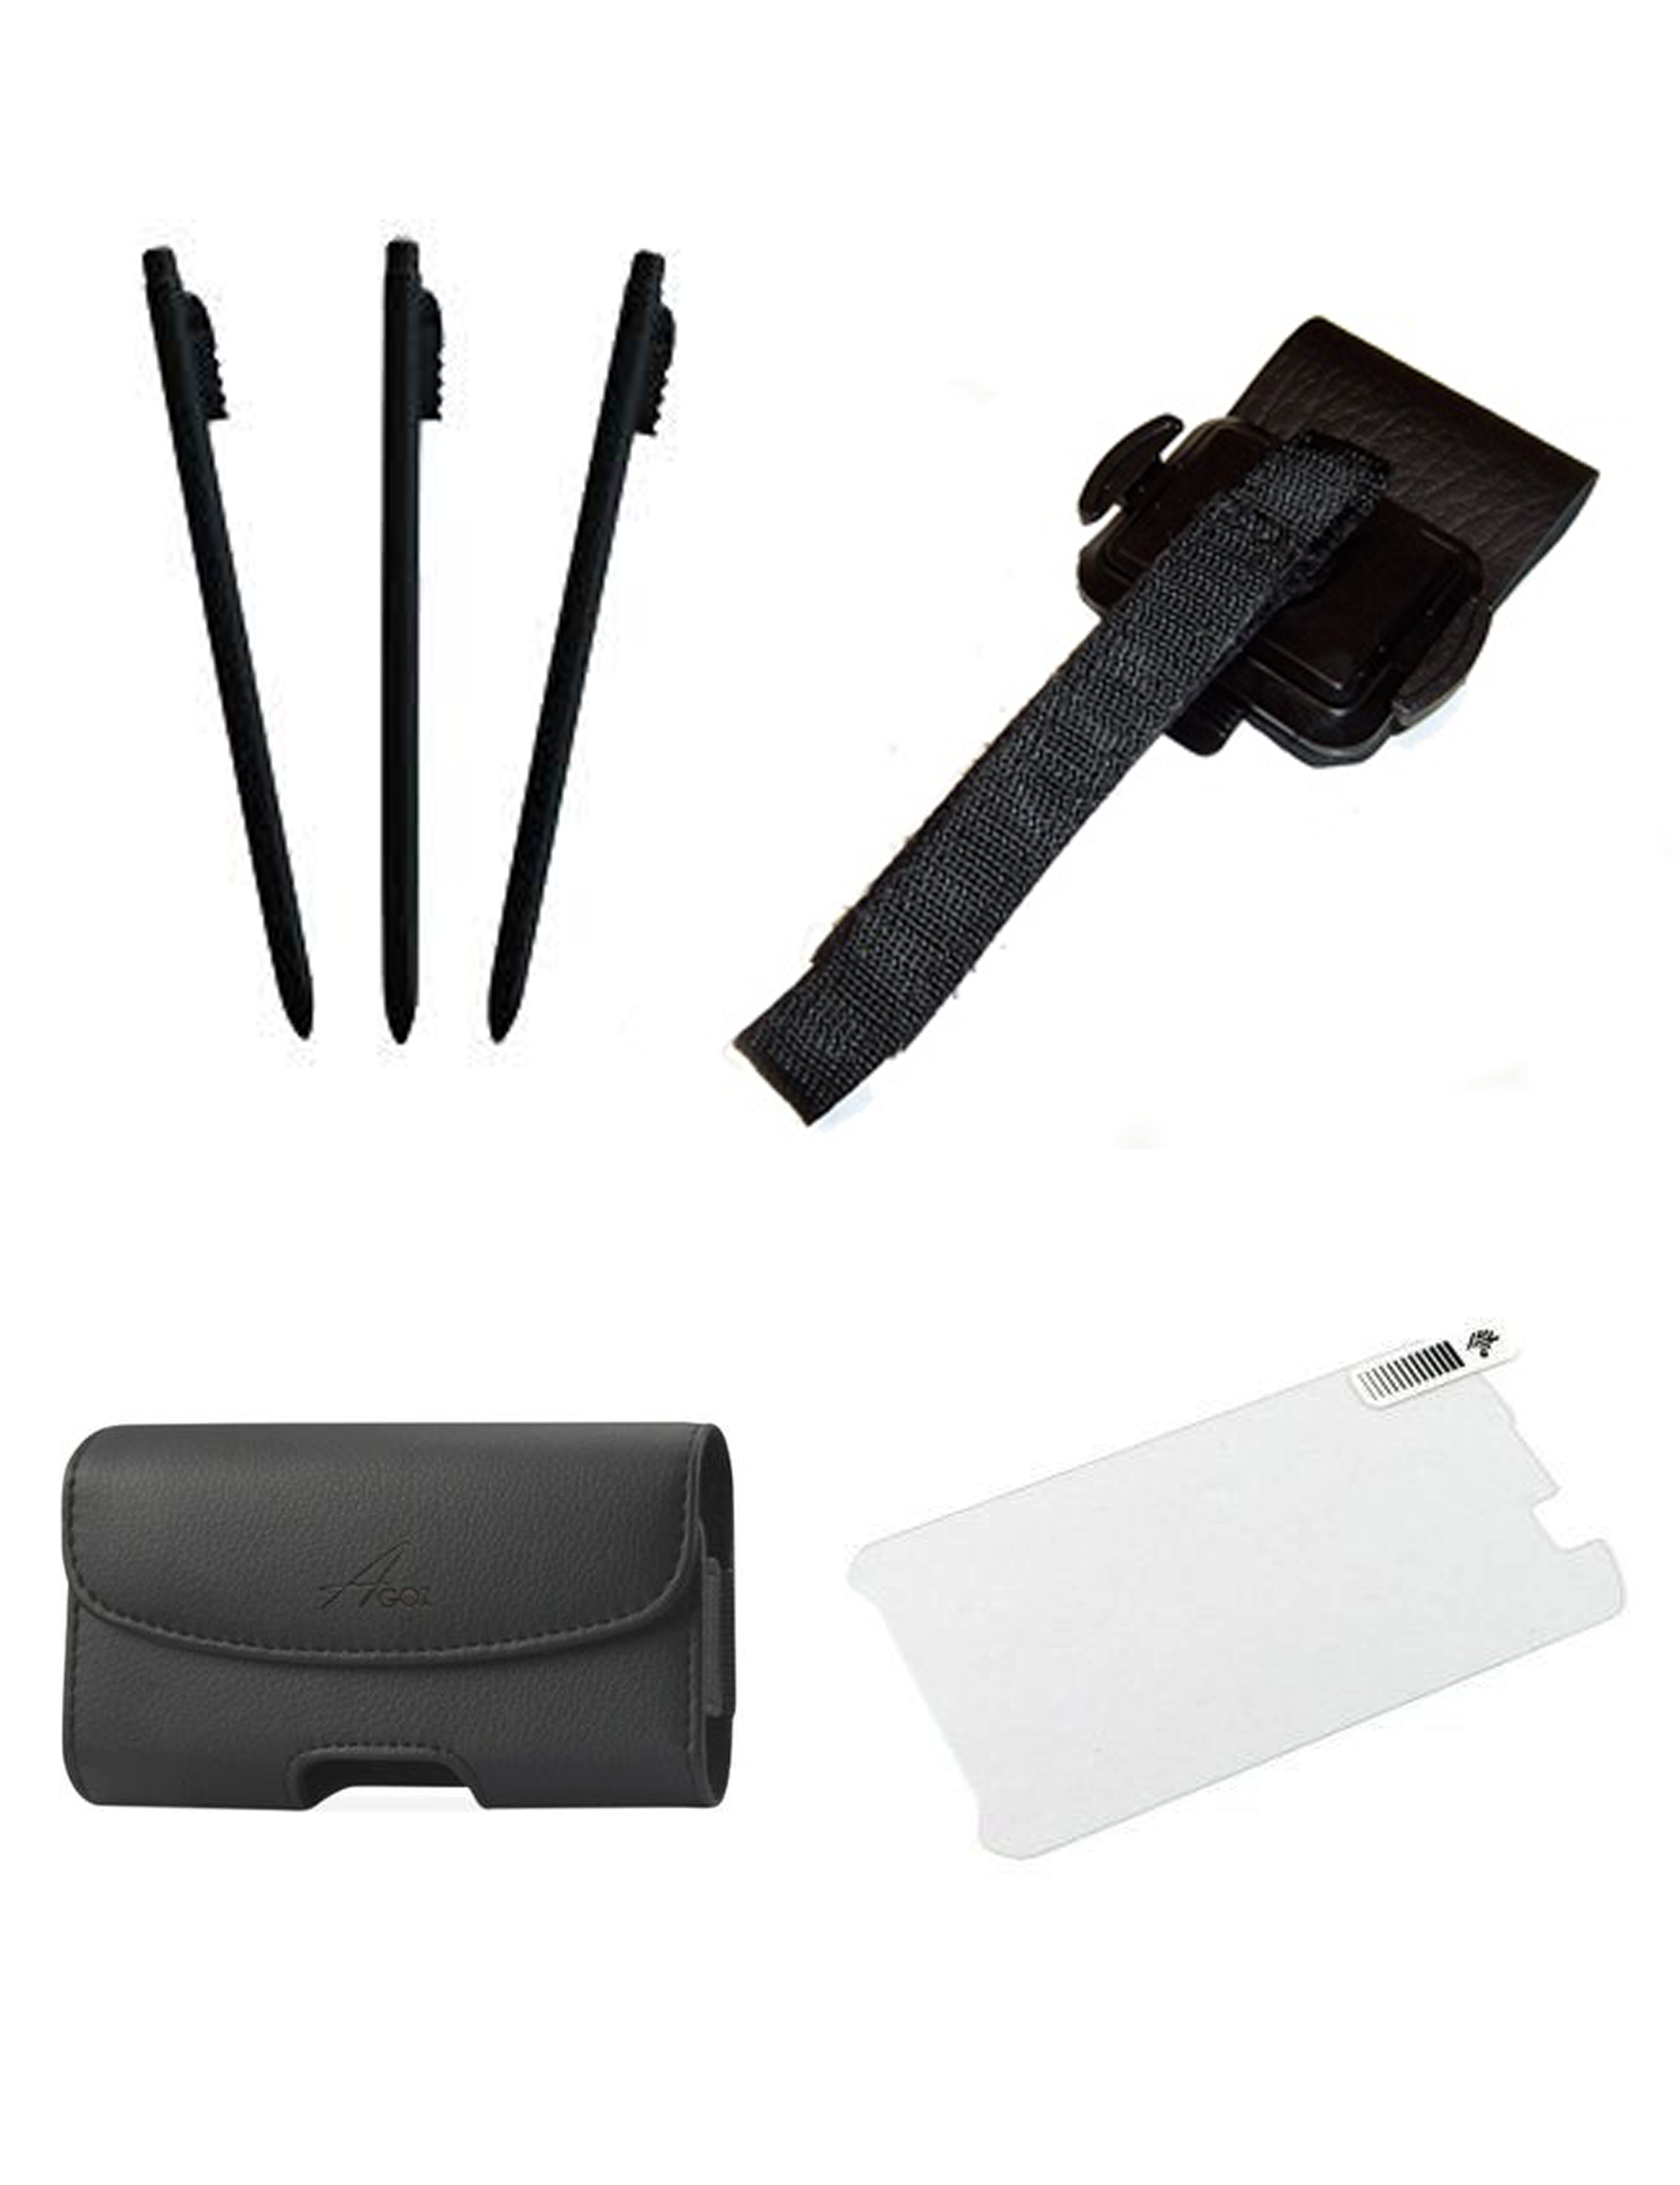 Miscellaneous Mobile Computer Accessories